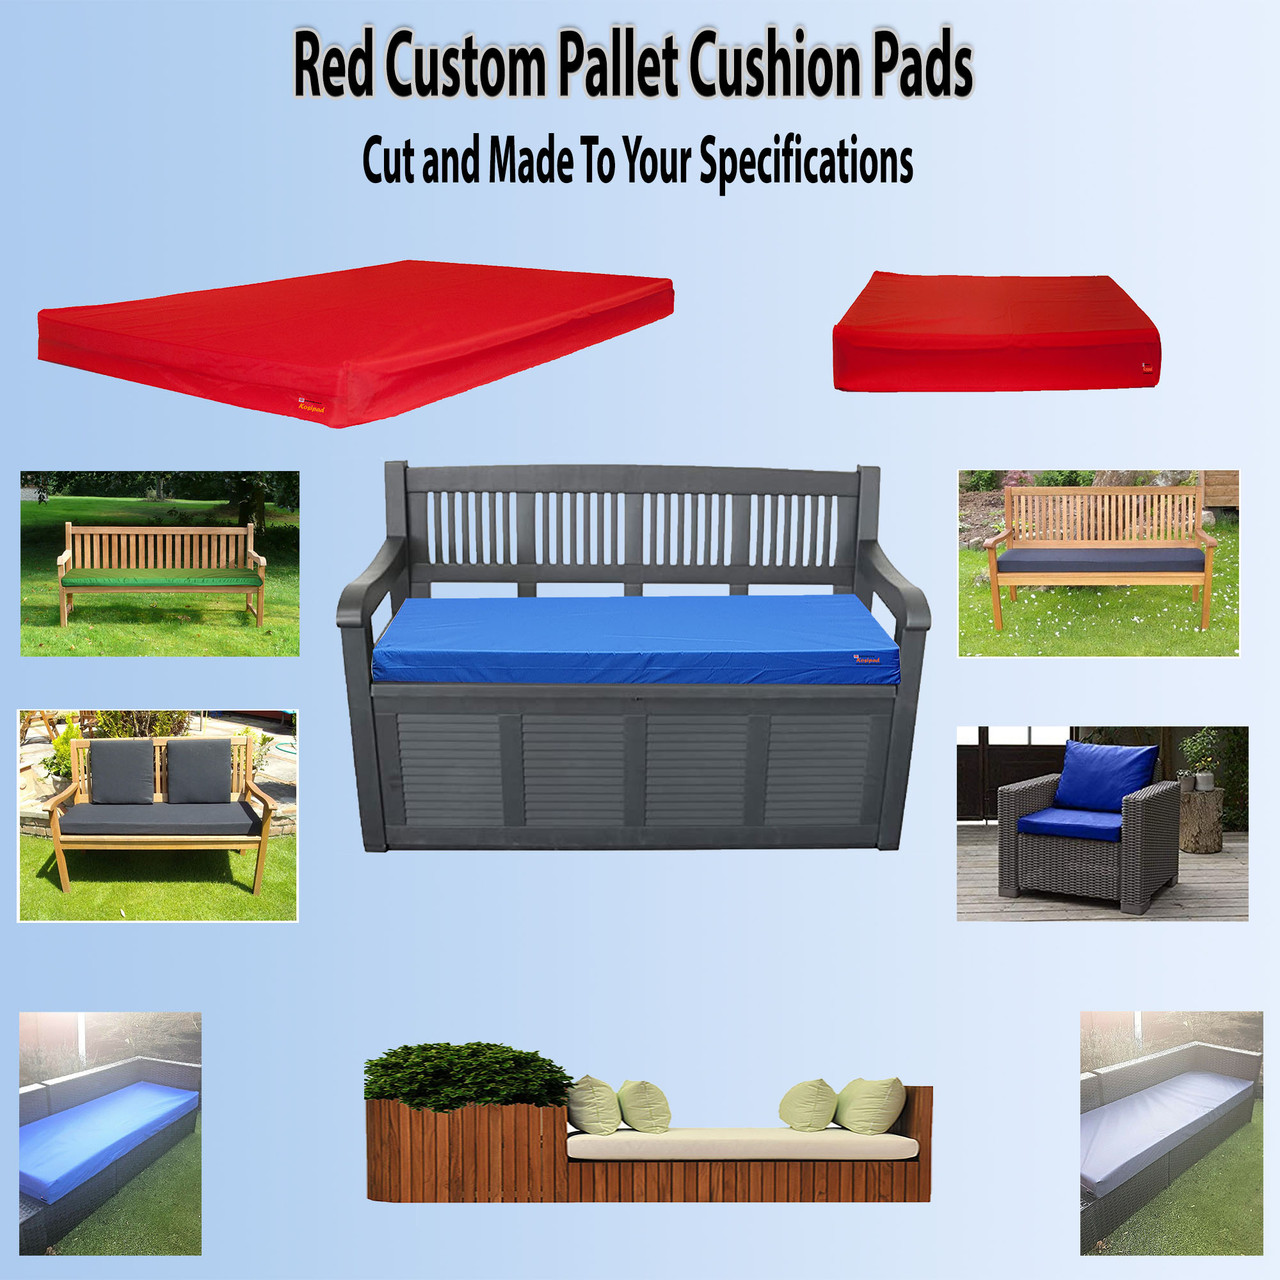 red-Custom-pallet-cushion-pads-cut-to-size